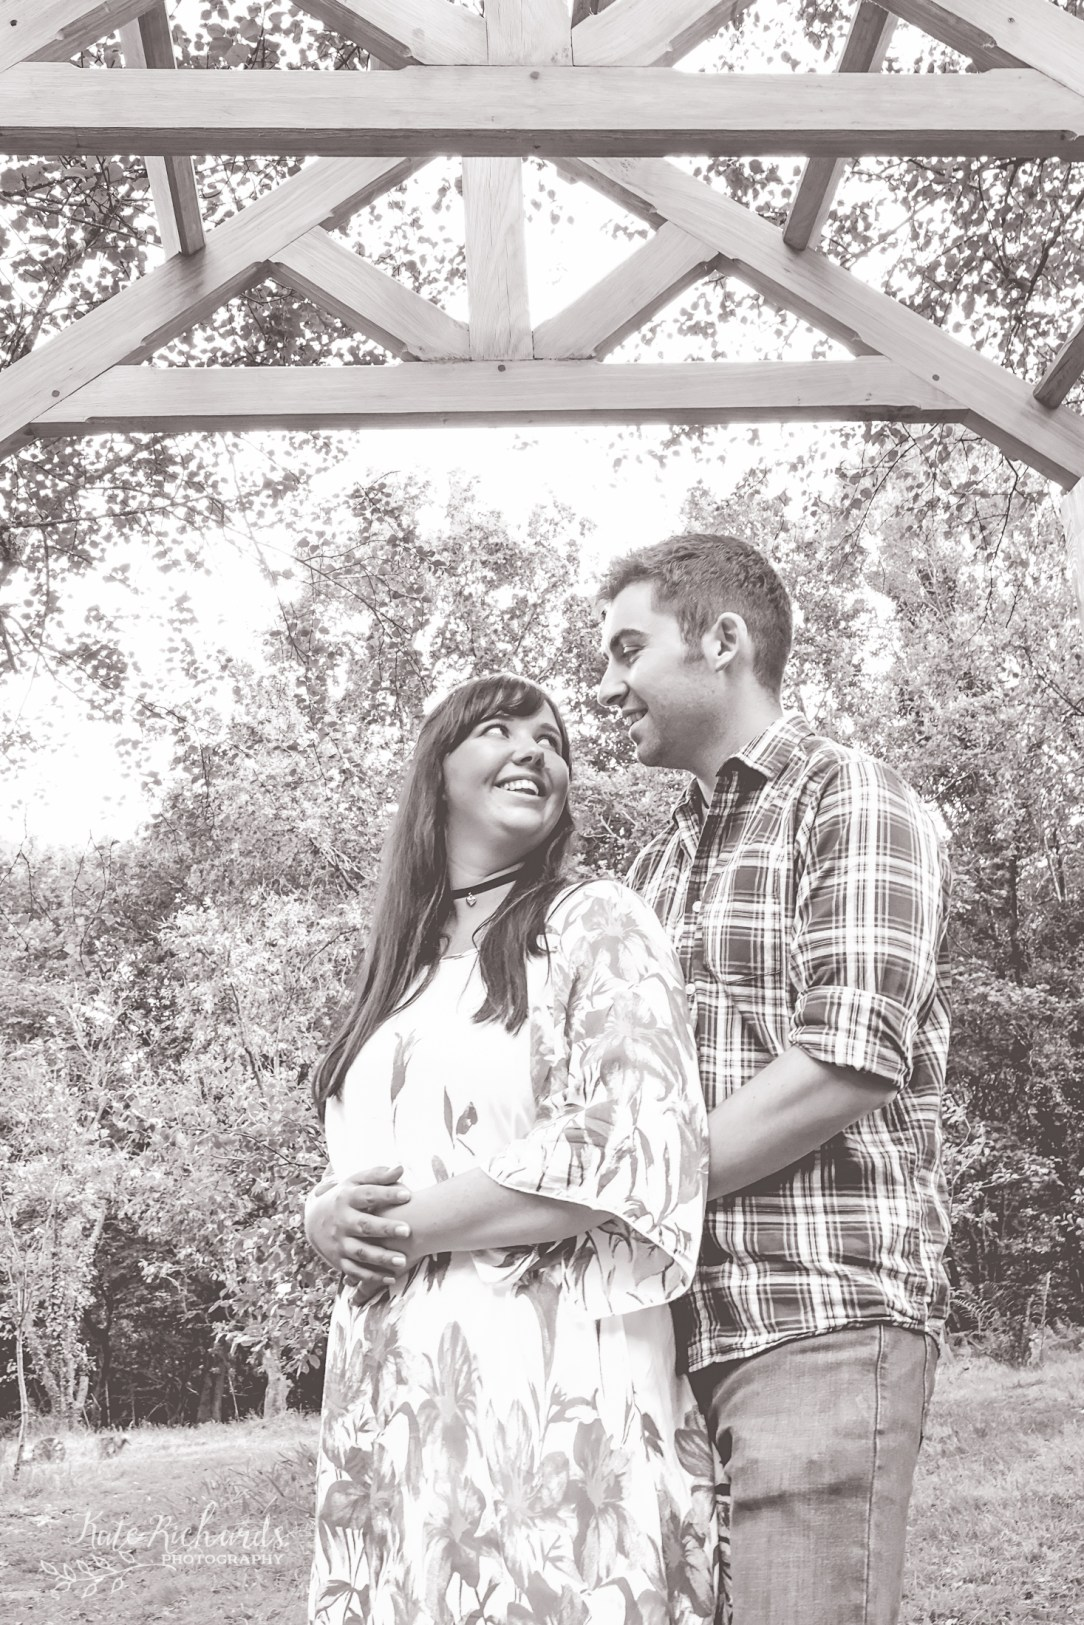 rich-zoe-prewed-web2-10